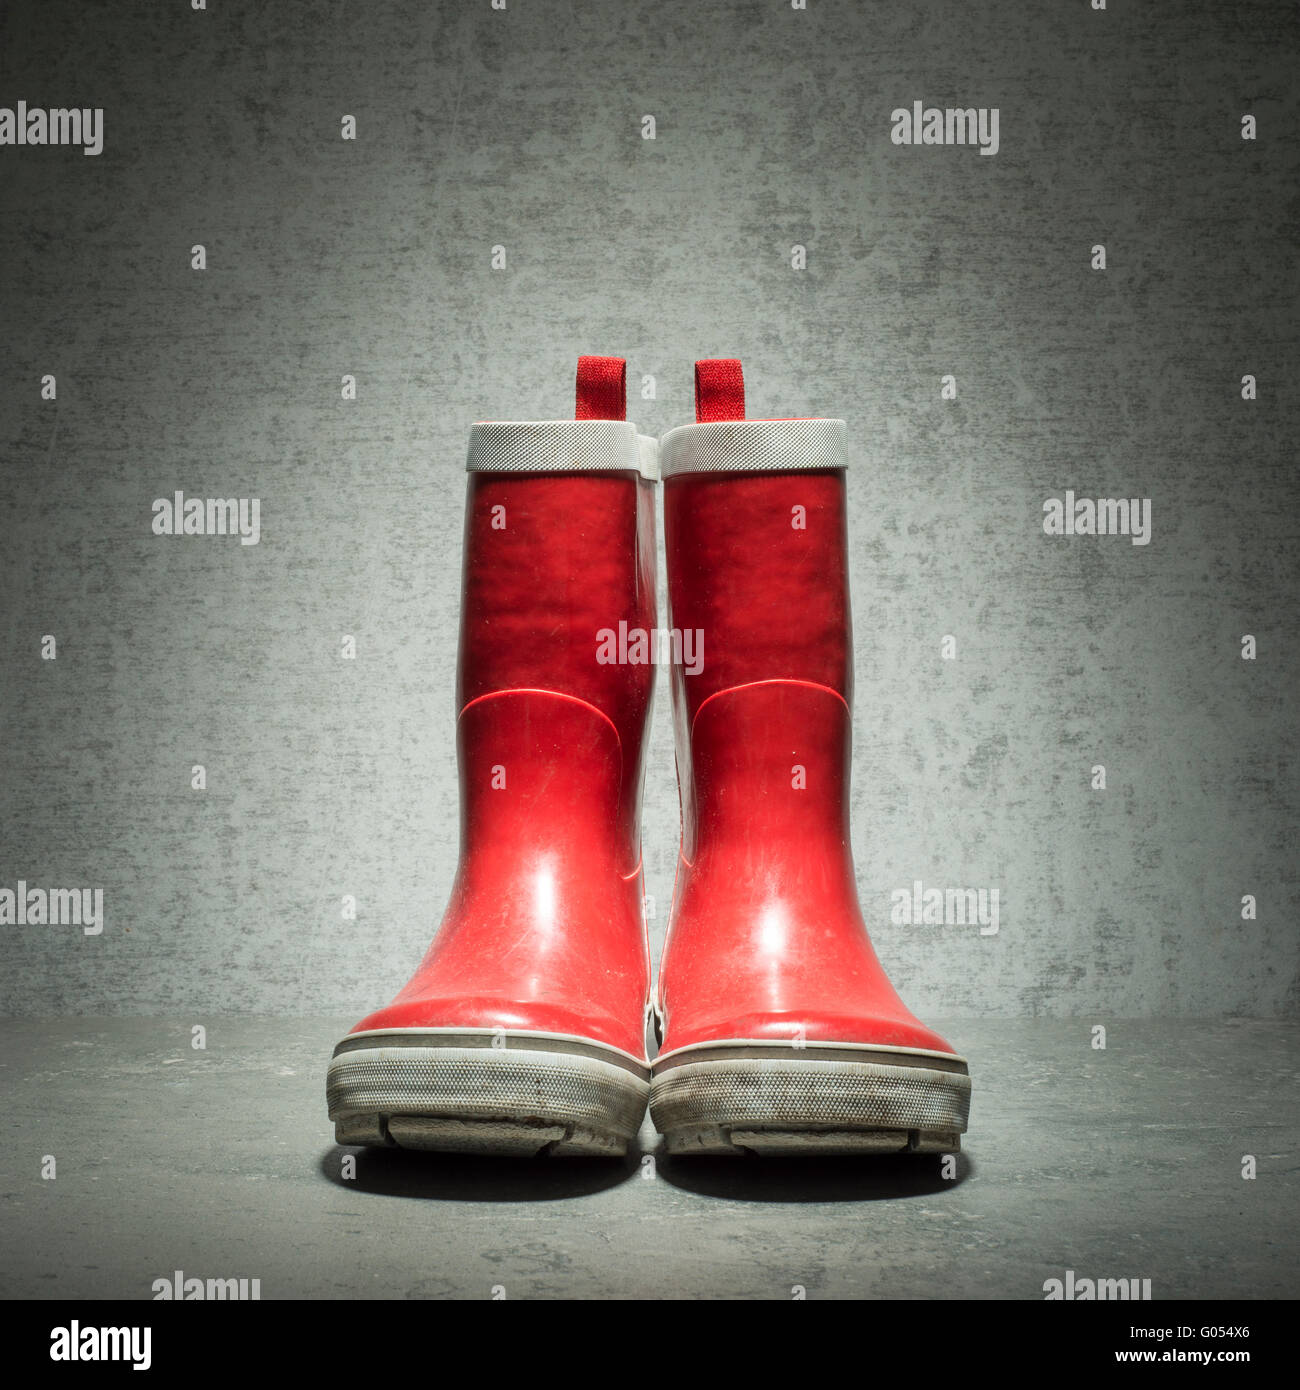 Red rubber boots in front of stone wall. Still life showing used waterproof rainboots. - Stock Image